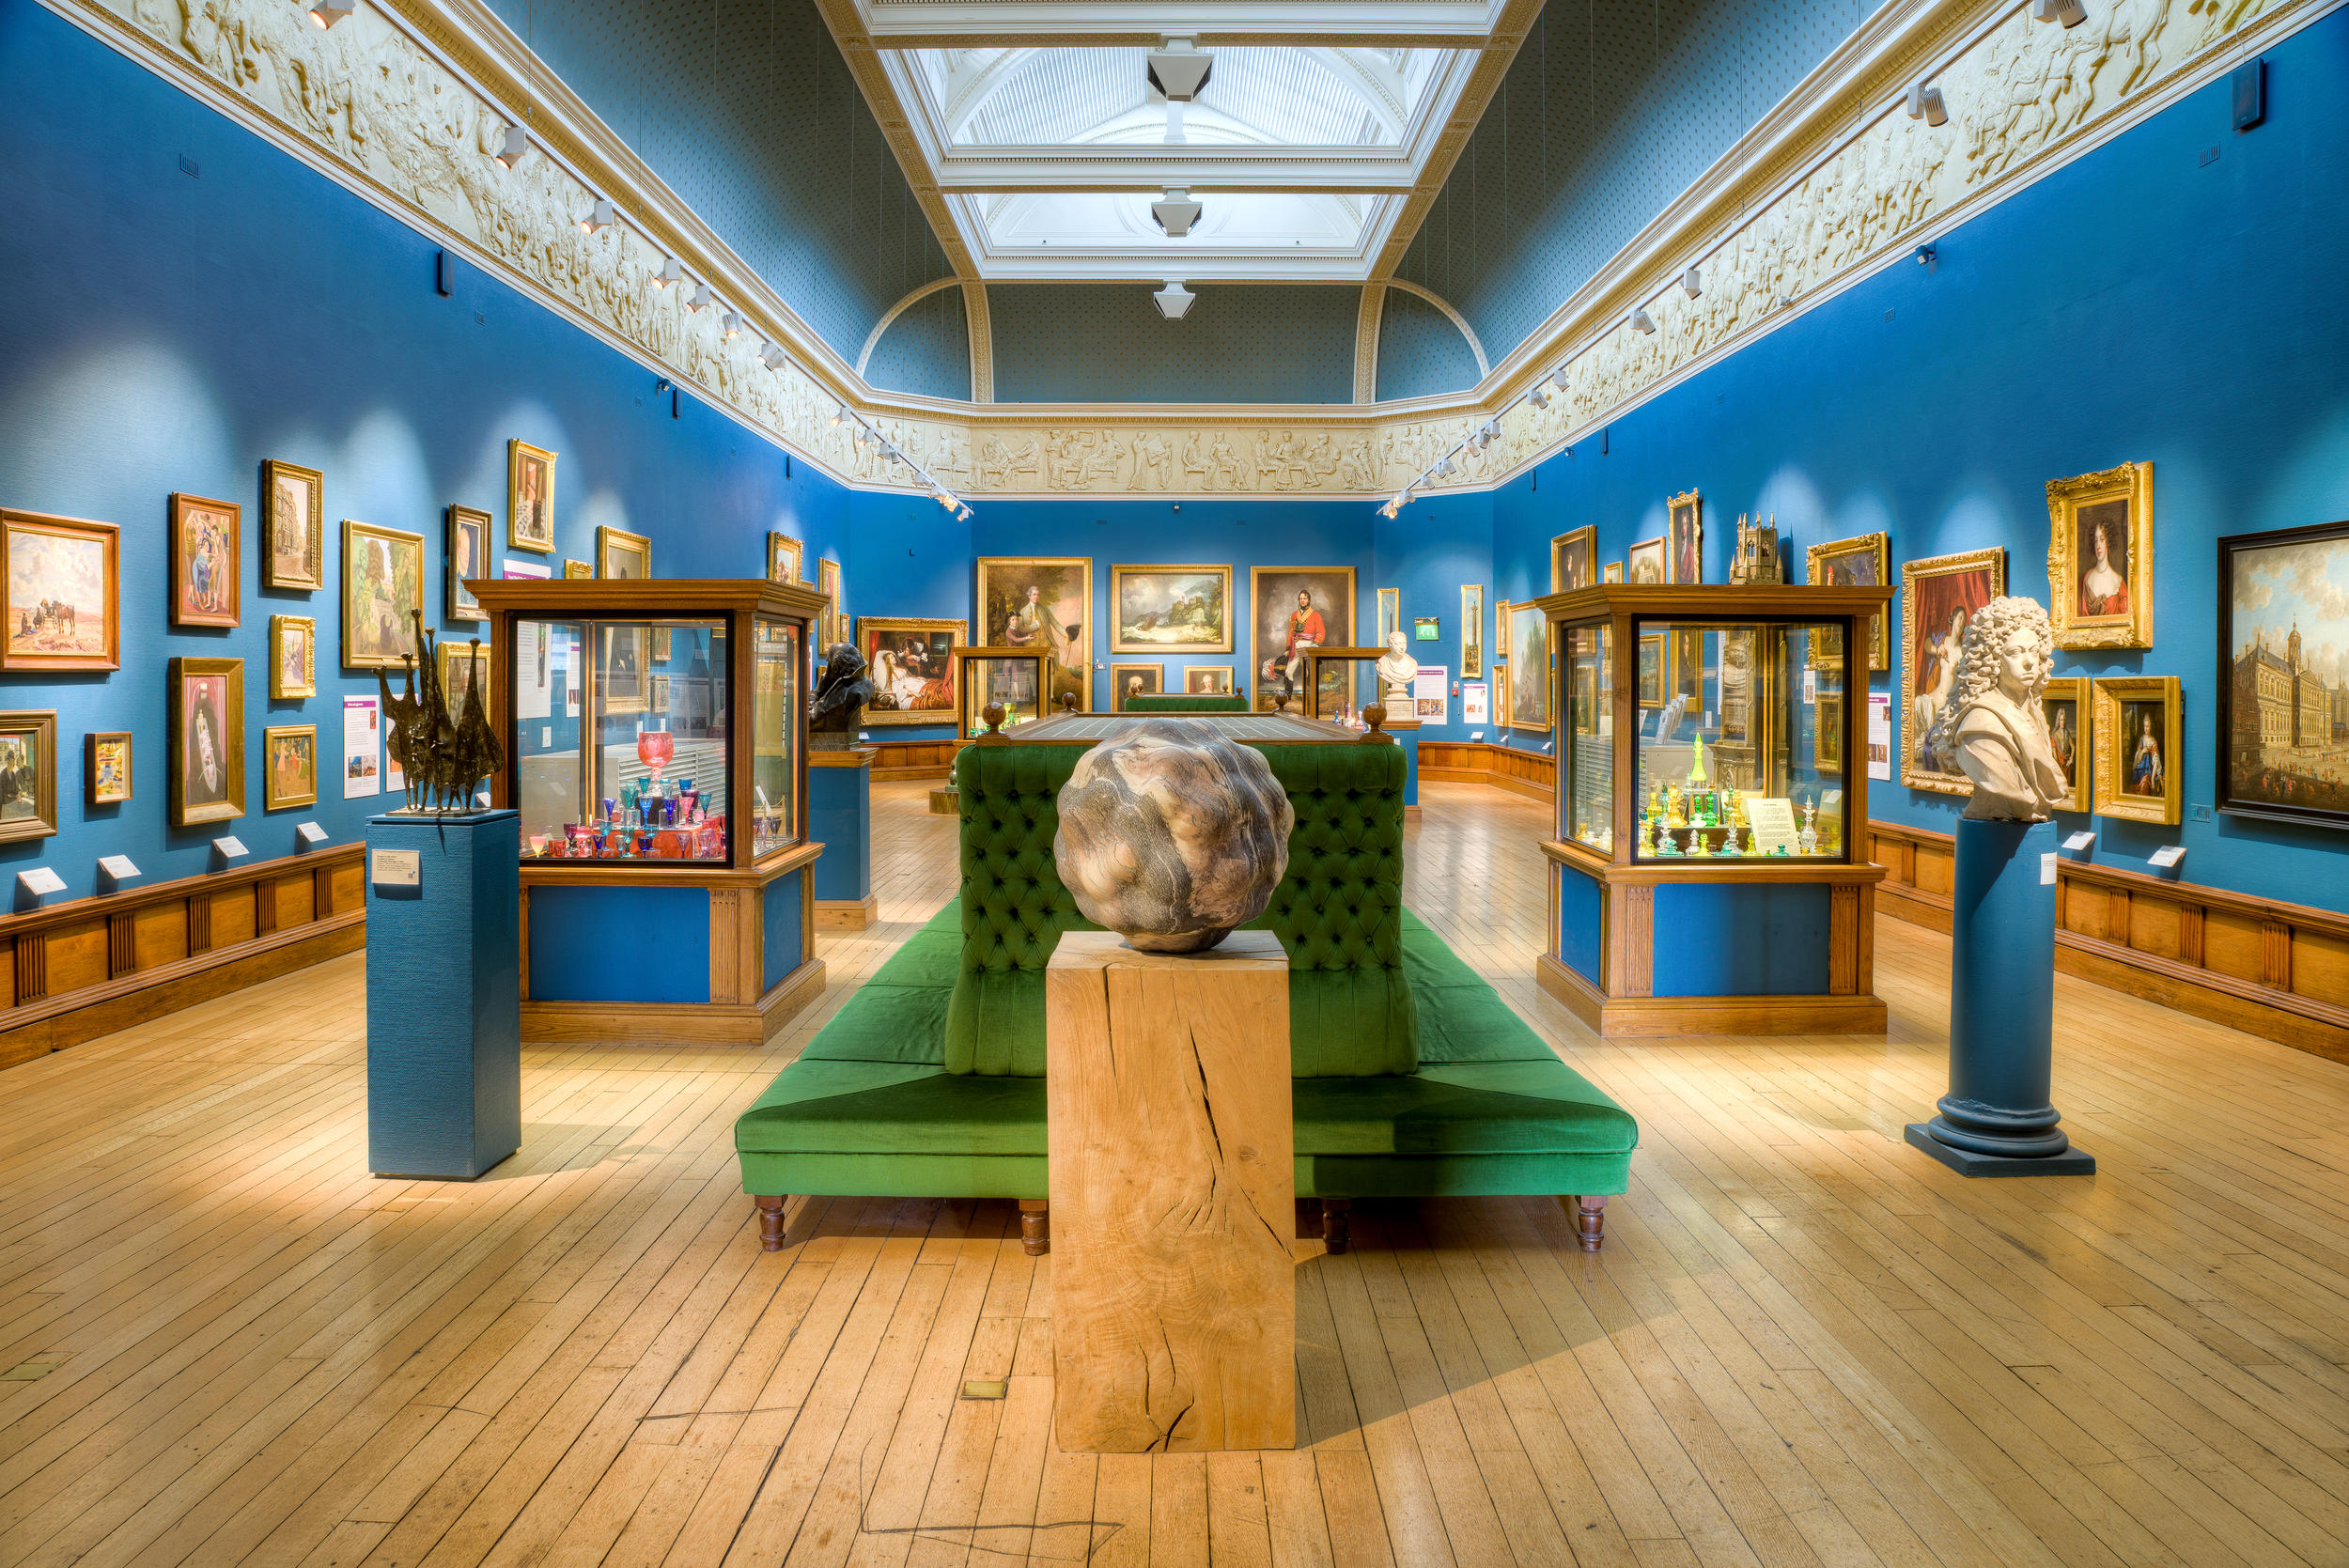 Things to Do in Bath with Kids The Victoria Art Gallery